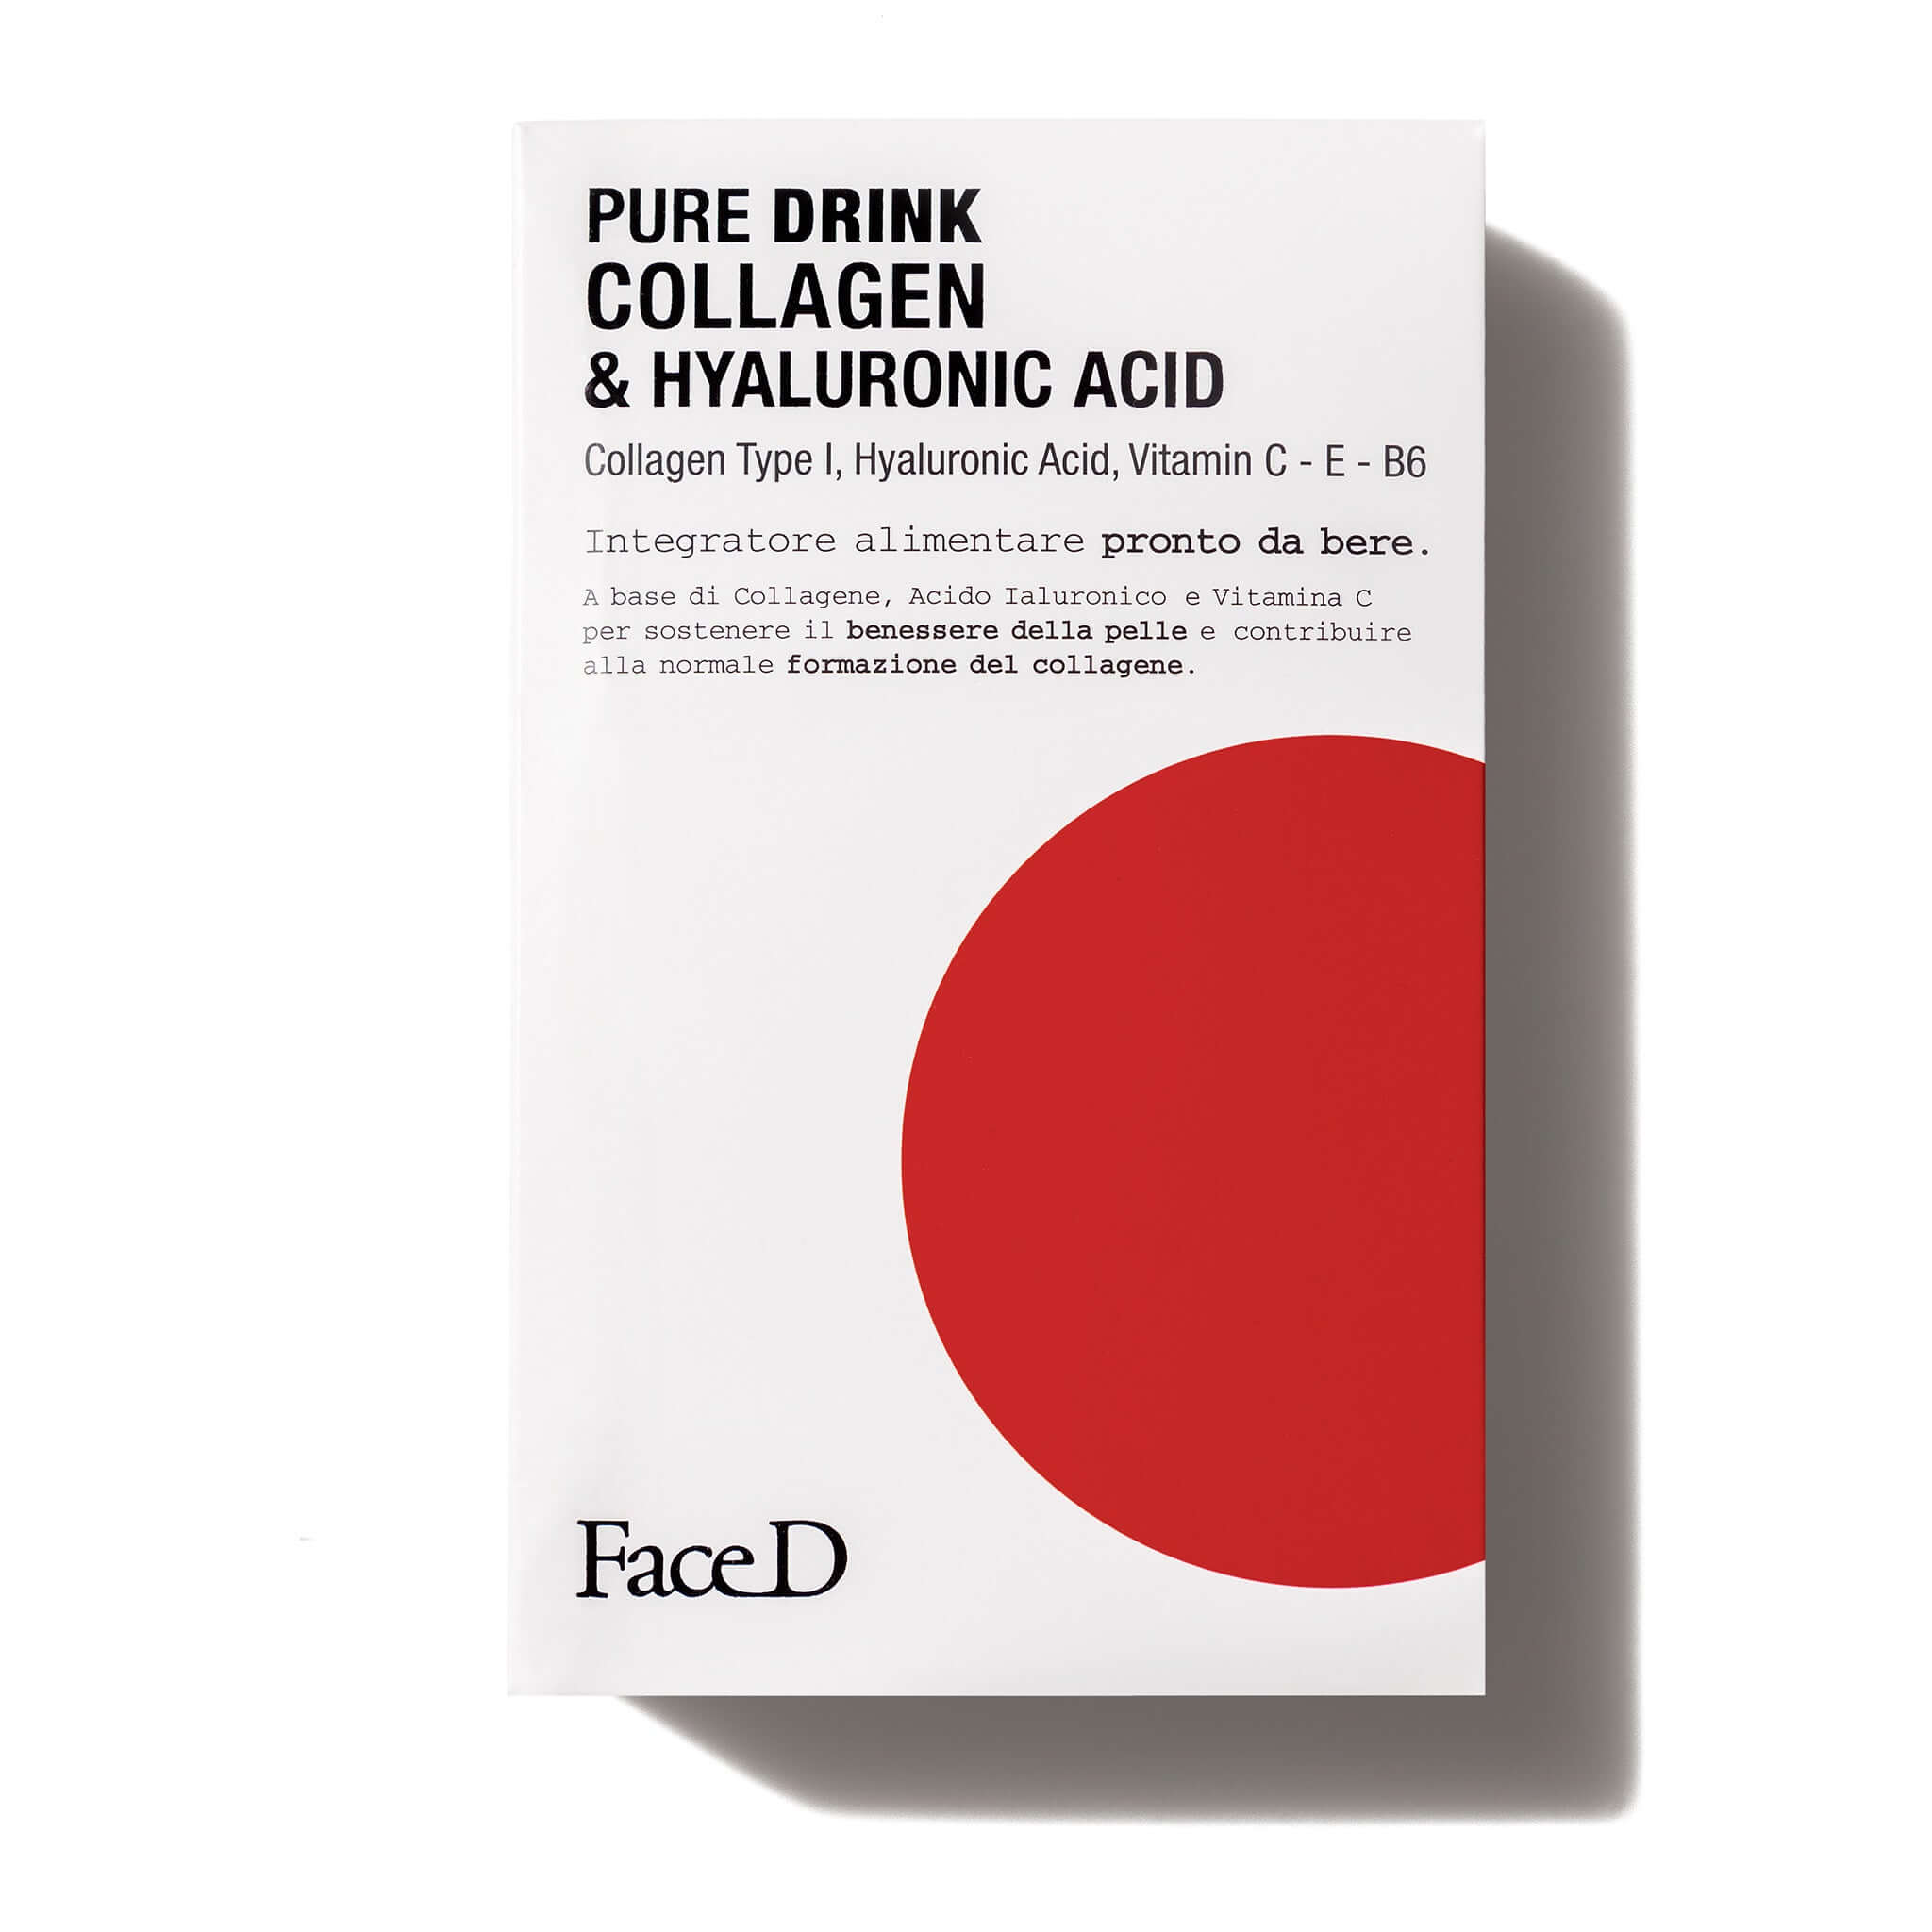 Pure-Drink-Collagen- Hyaluronic-Acid-FaceD-Moisturisers || Pure-Drink-Collagene-Acido-Ialuronico-Integratore-alimentare-FaceD-idratazione